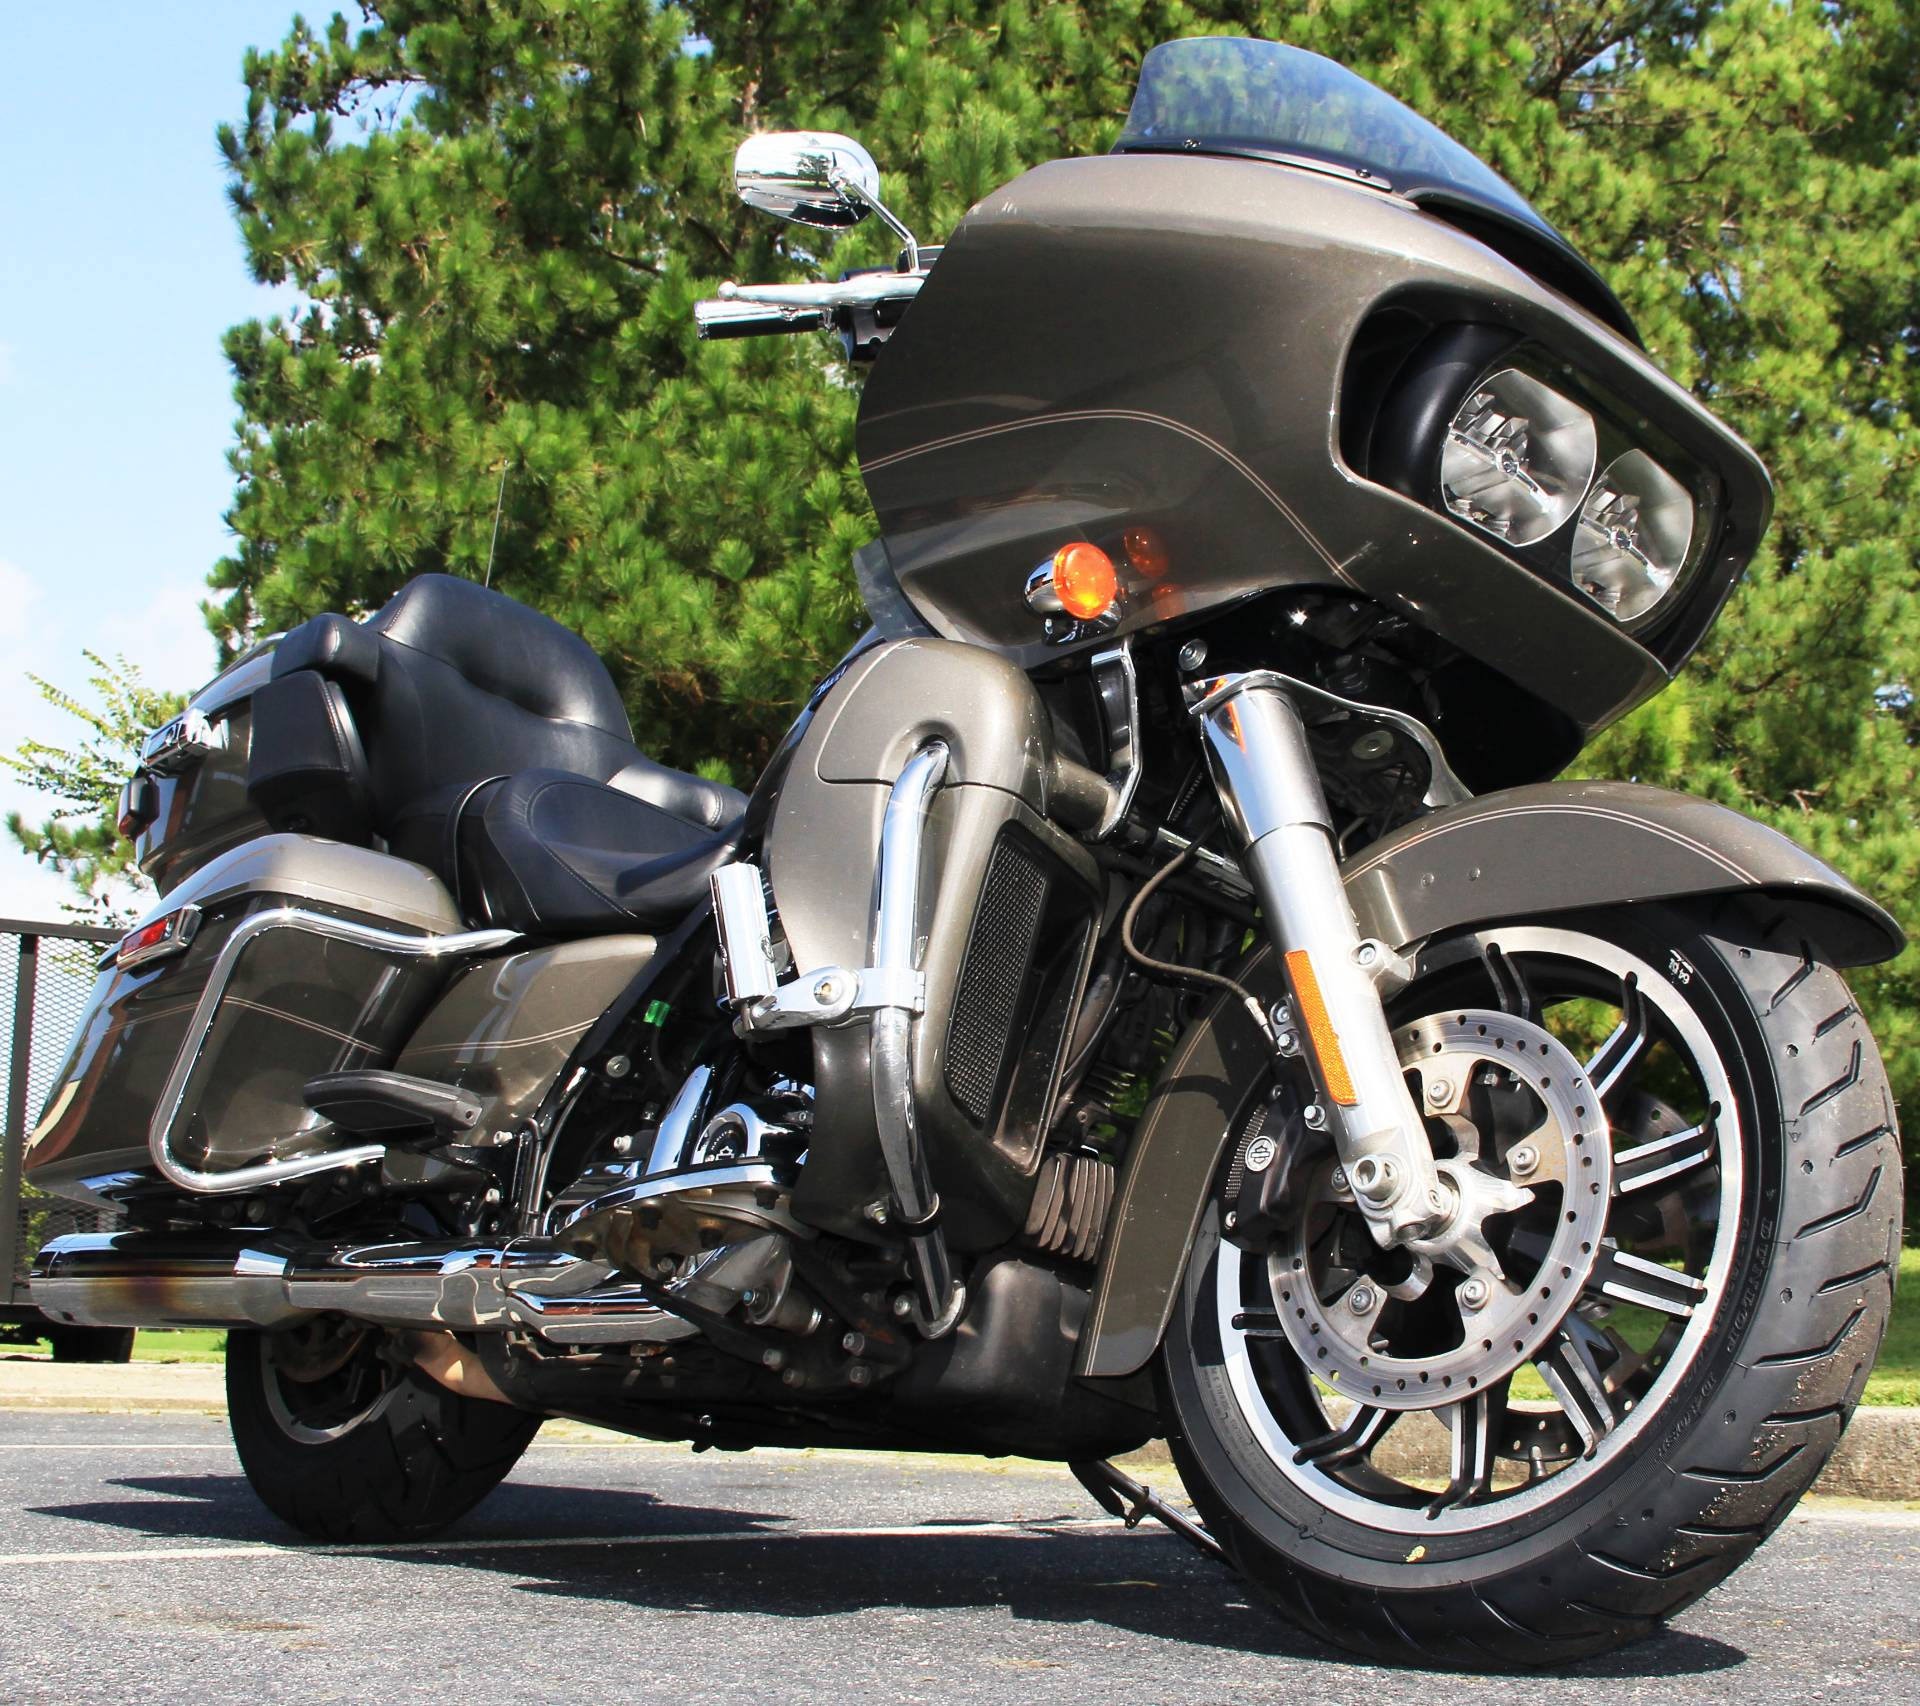 2018 Harley-Davidson Road Glide Ultra in Cartersville, Georgia - Photo 2